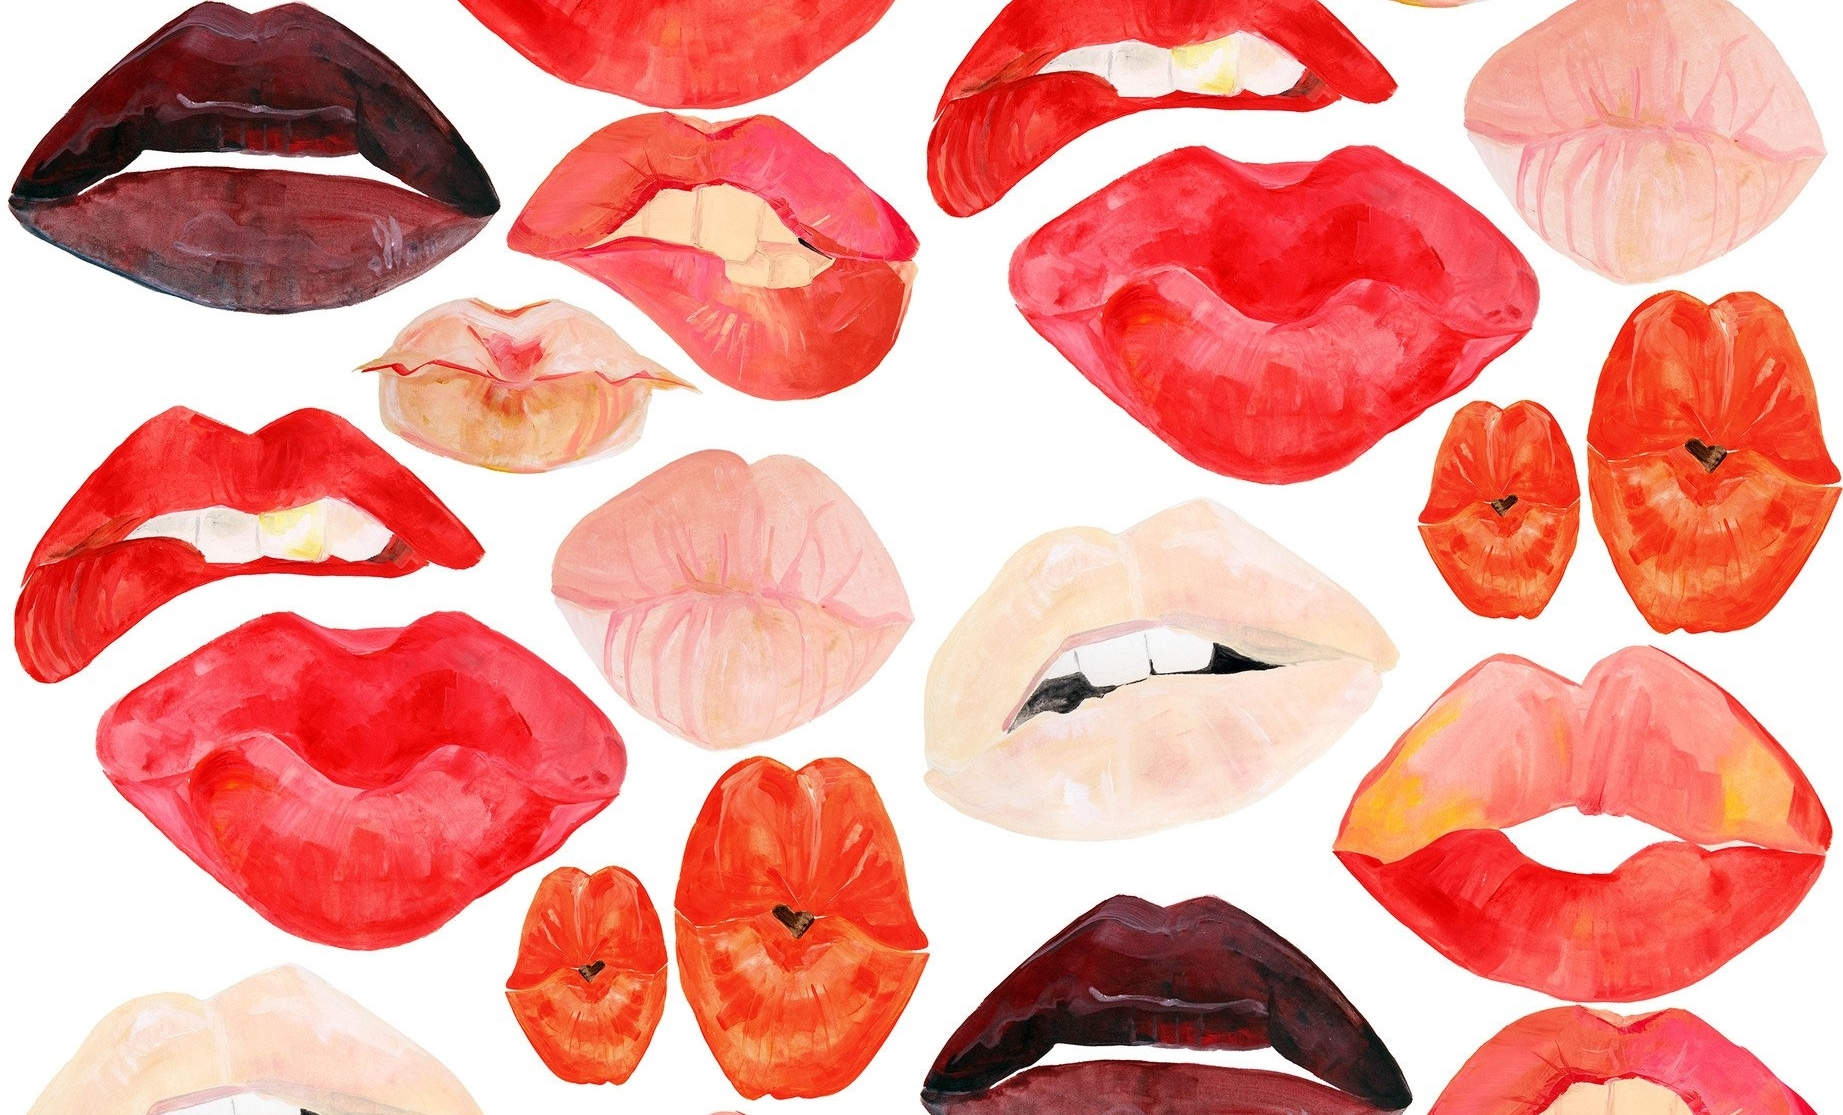 Voutsa-Lips-White-Wallpaper.jpg